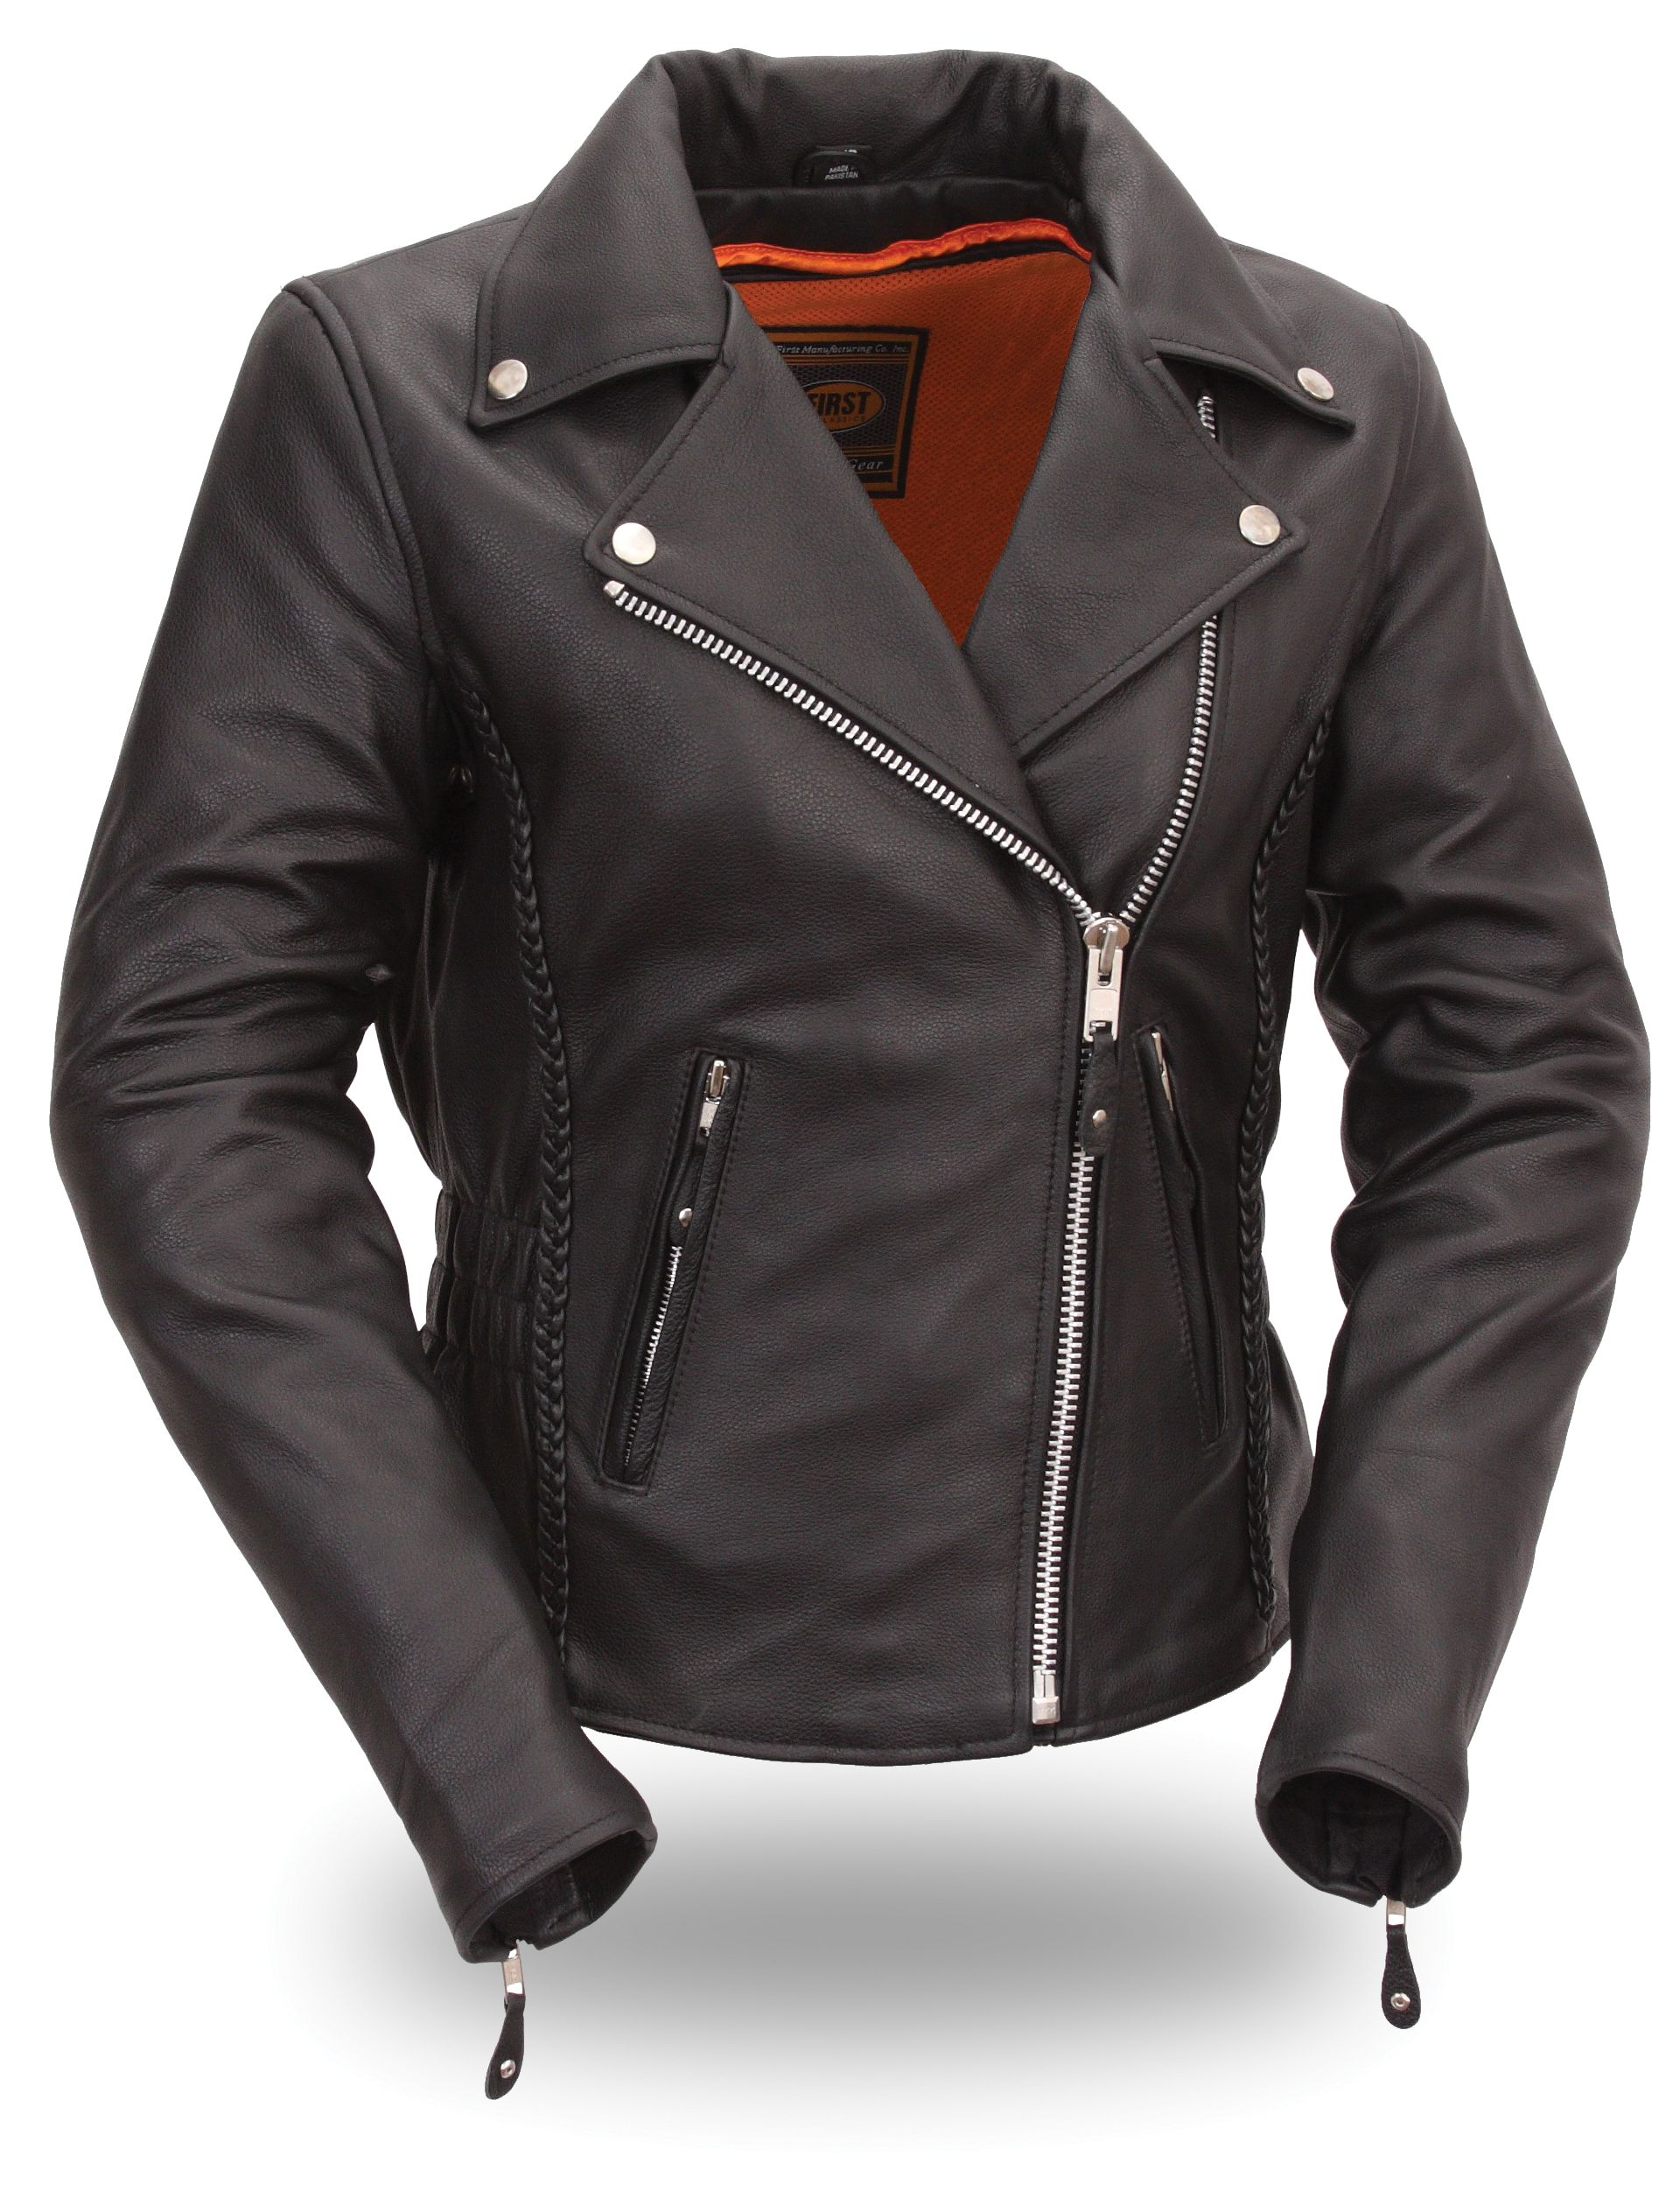 Motorcycle Apparel for Women Motorcycle Clothing Women